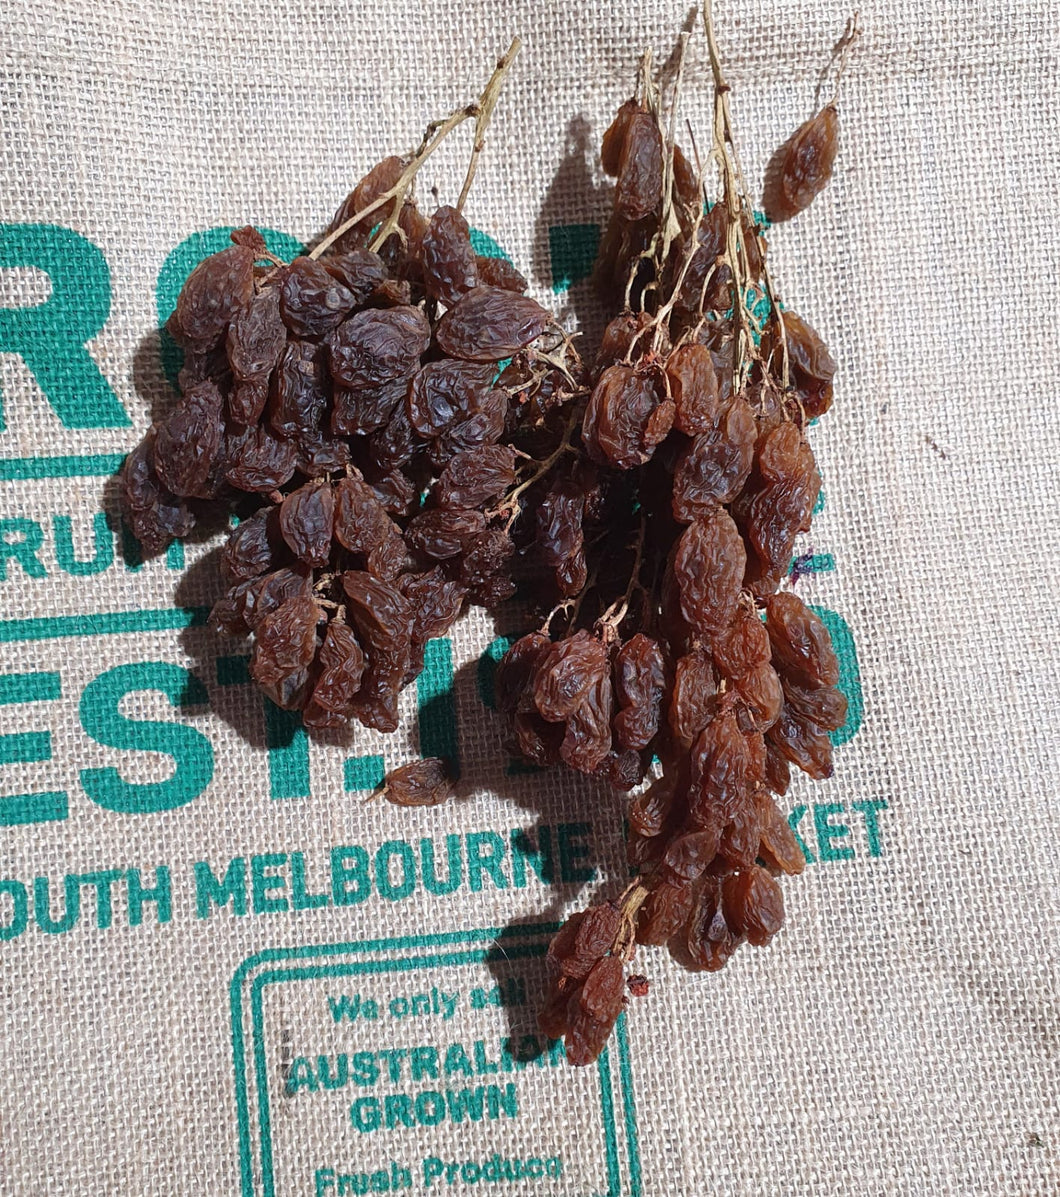 Grapes-Muscatel Dried 300g